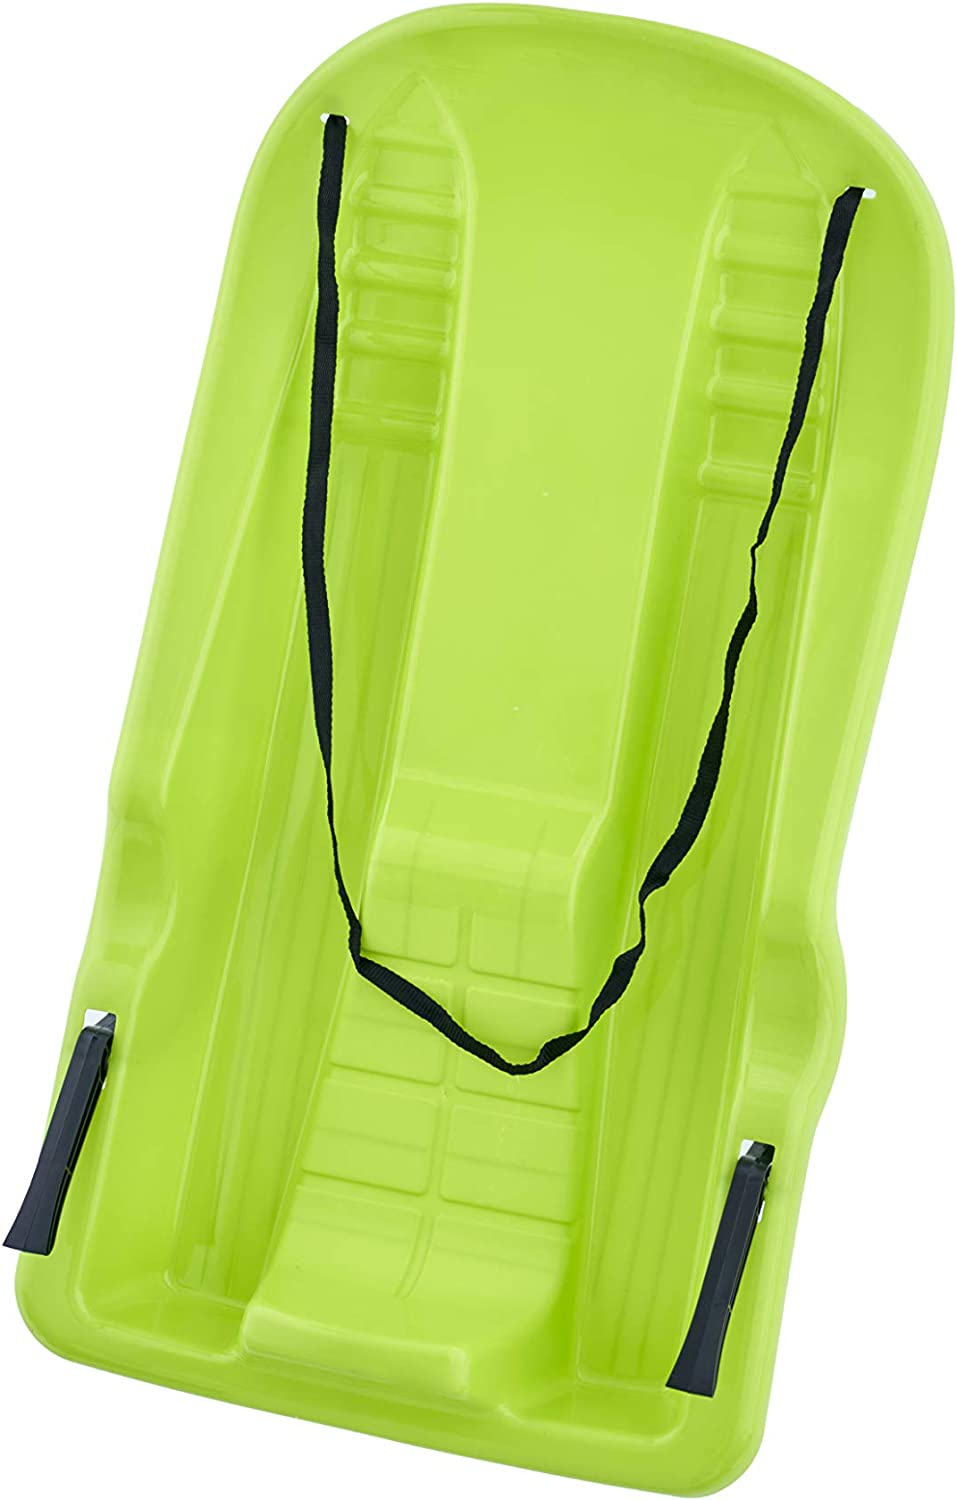 Superio Long Sled with Breaks